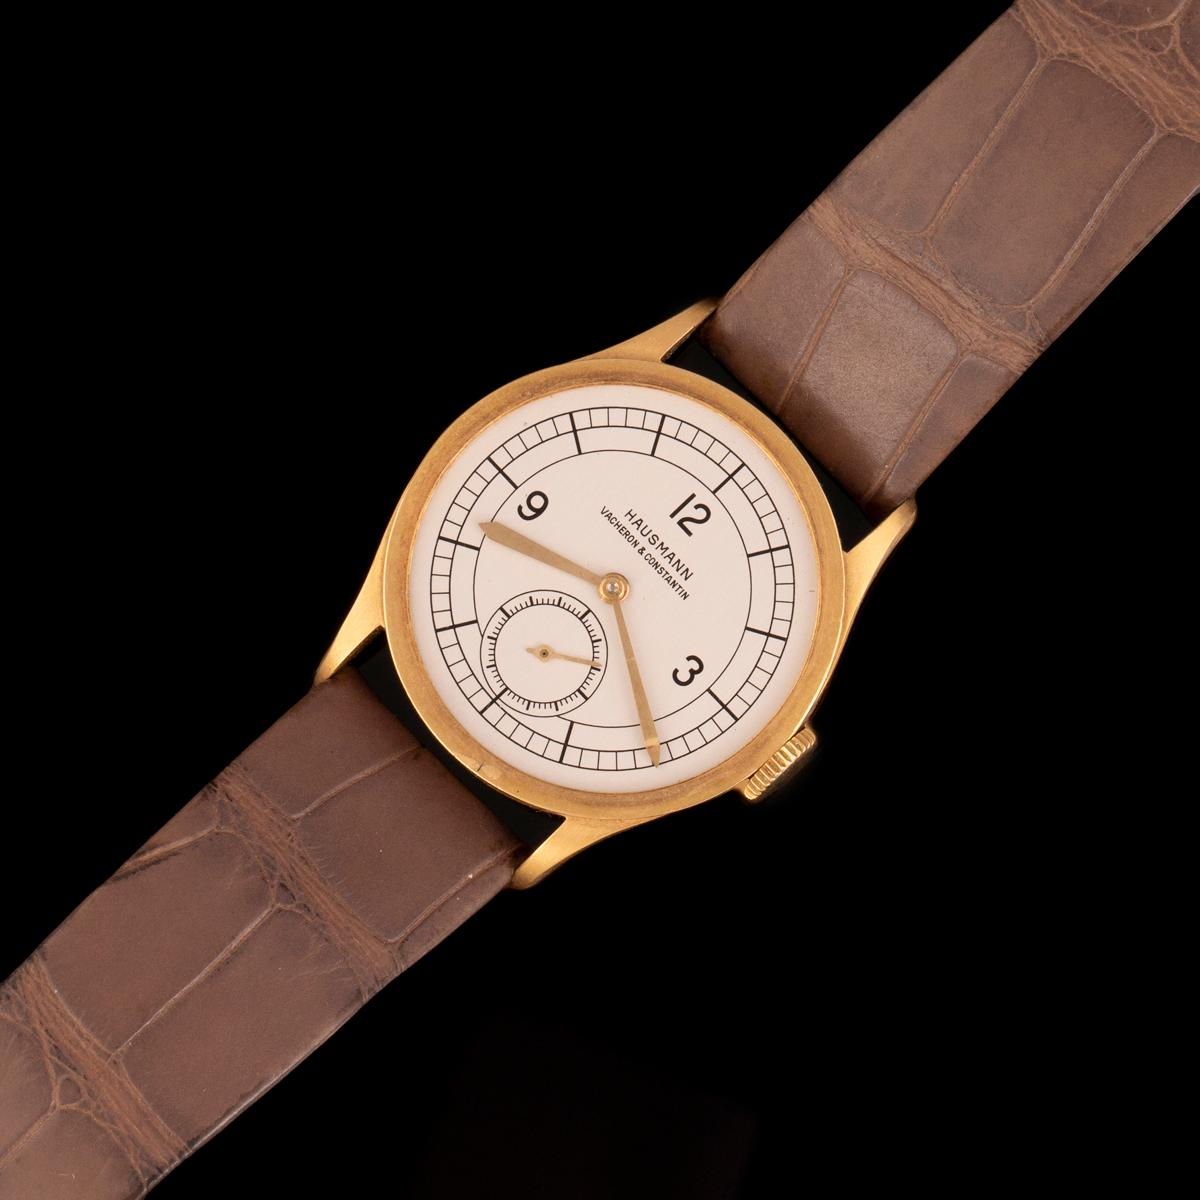 Vacheron & Constantin Gold Wristwatch with Sector Dial Retailed by Hausmann